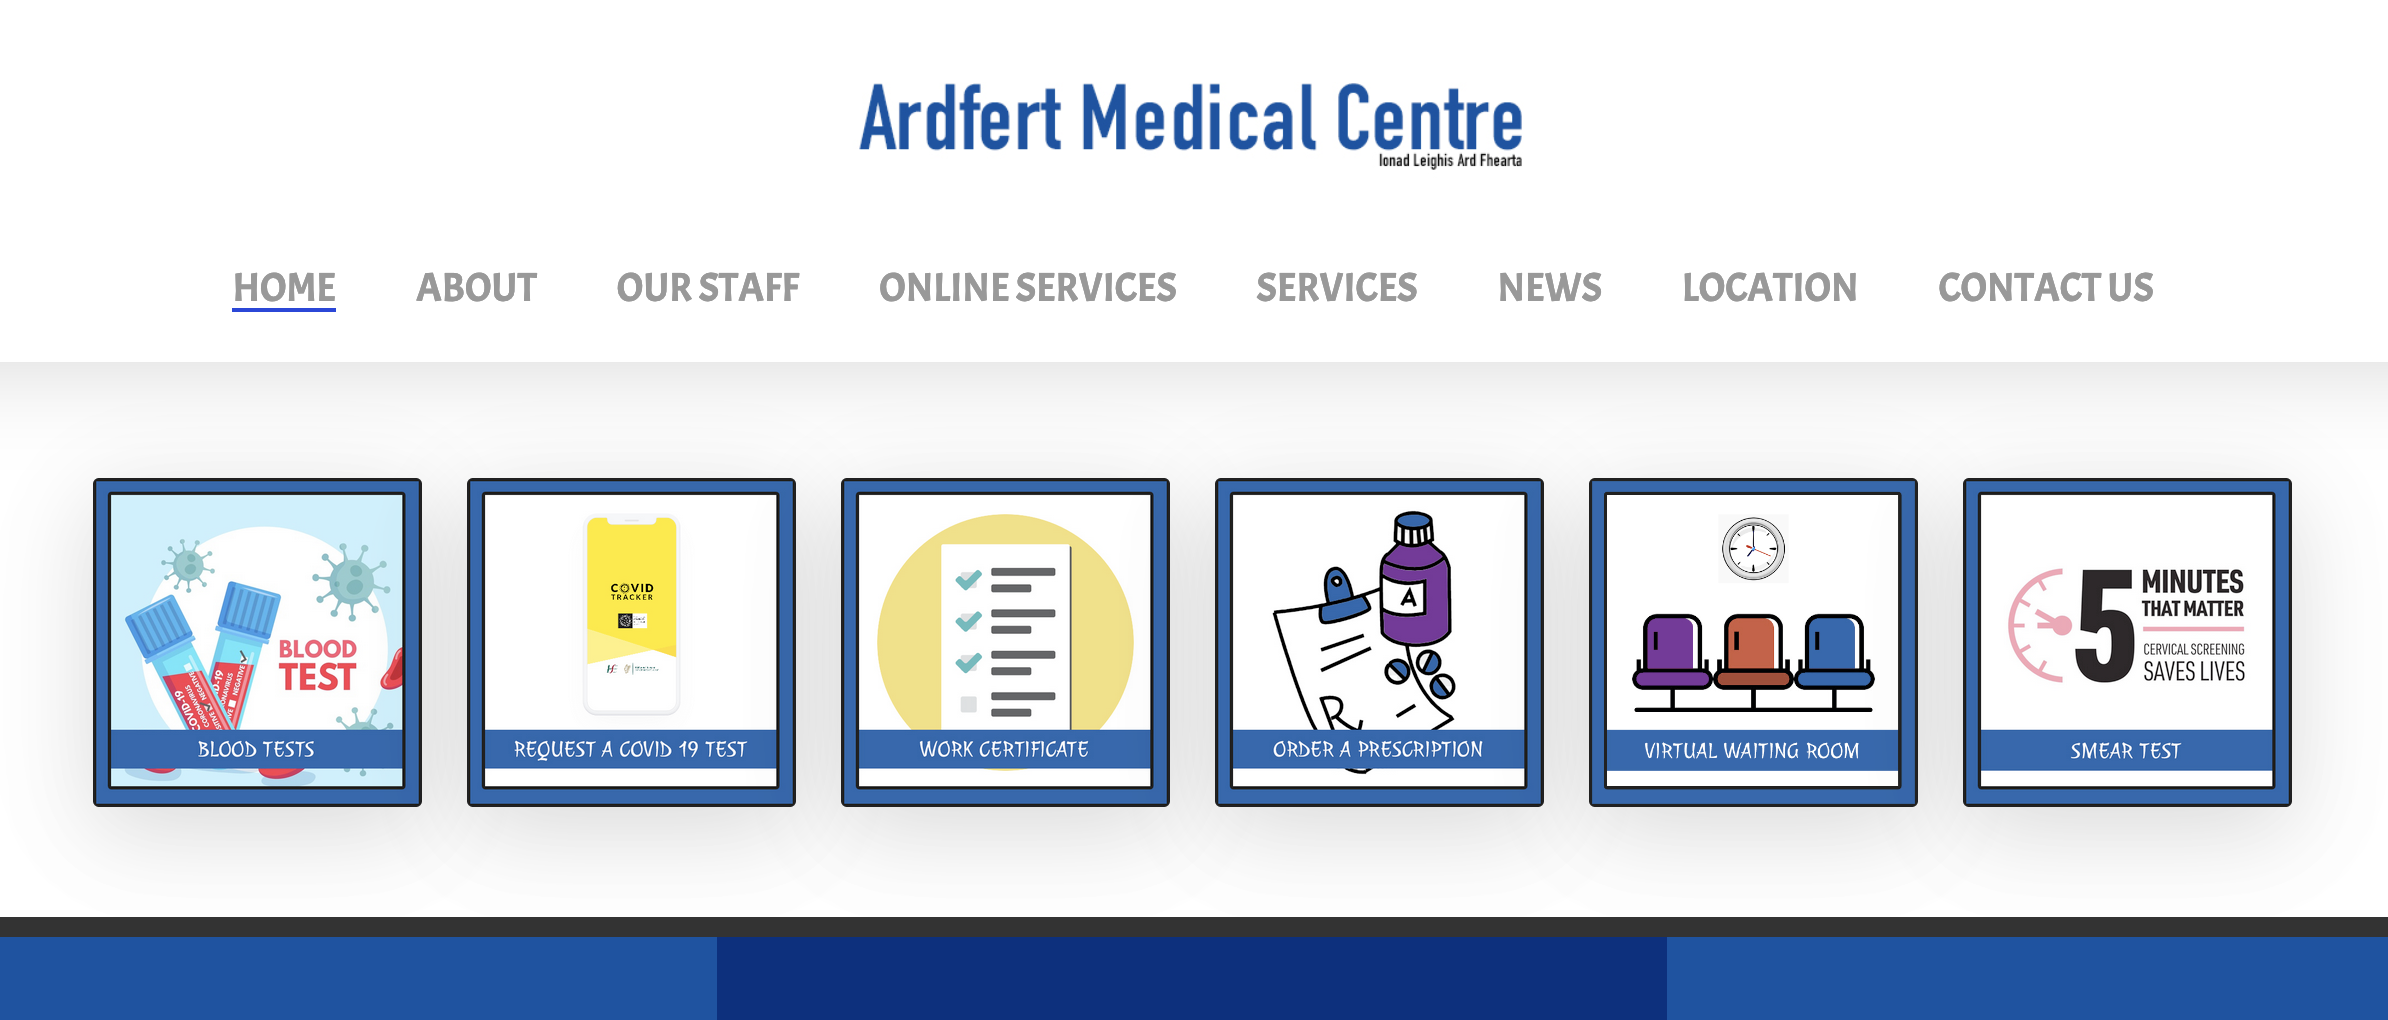 image of online services